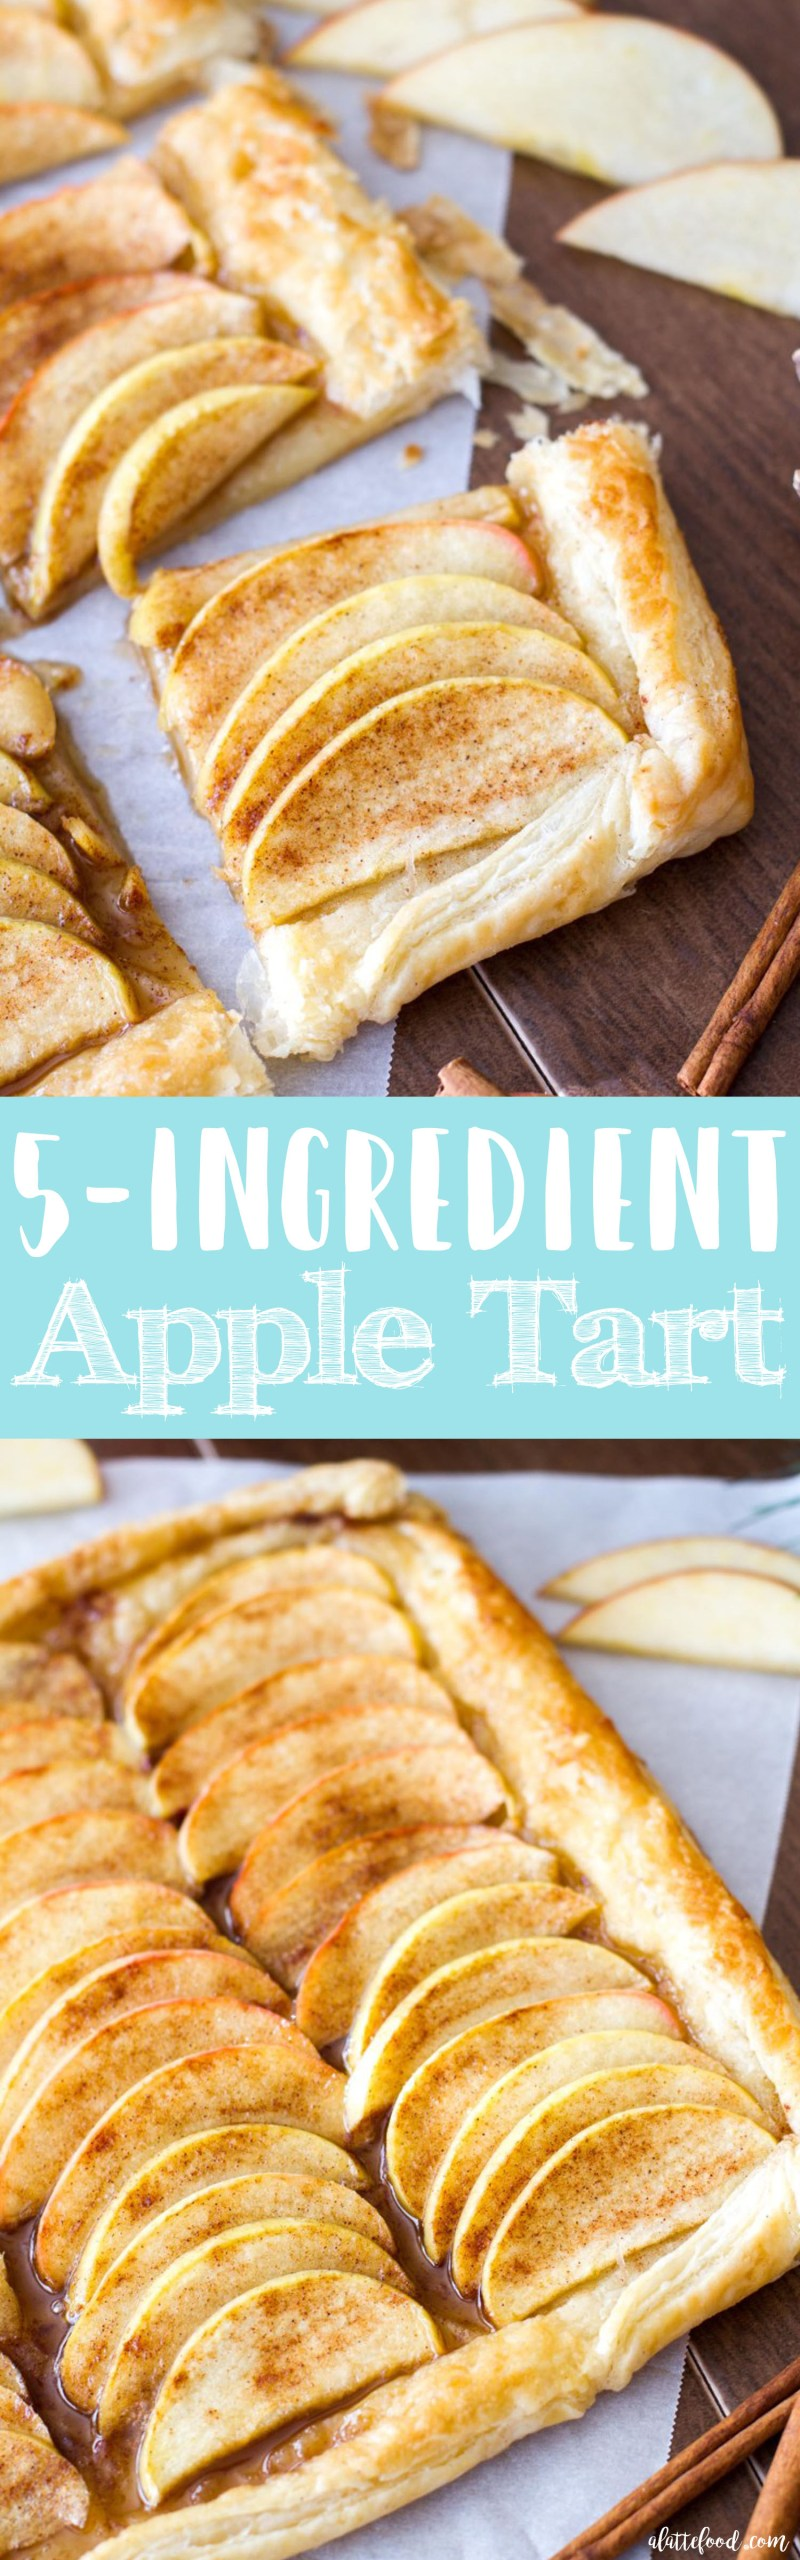 This easy apple tart recipe is made with only 5-ingredients! It's breakfast, dessert, and a snack all rolled into one recipe. I KNOW.  apple pie, apple tart, puff pastry